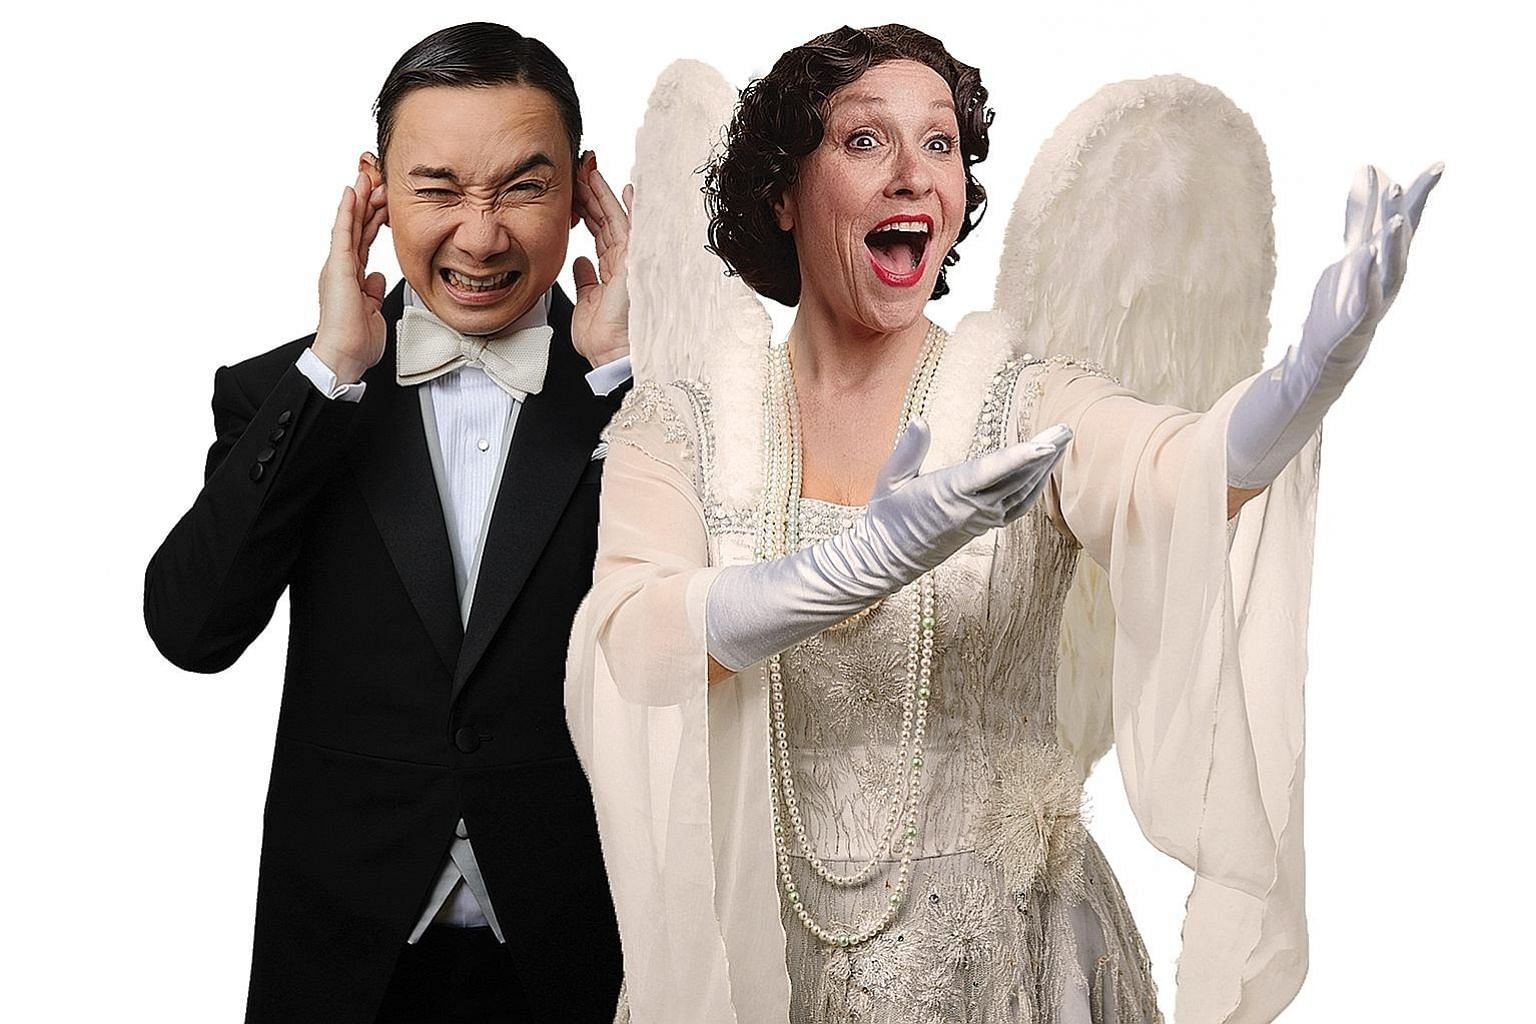 British actress Leigh McDonald plays New York socialite Florence Foster Jenkins, while home-grown actor Hossan Leong takes on the role of her accompanist, Cosme McMoon, in Souvenir.